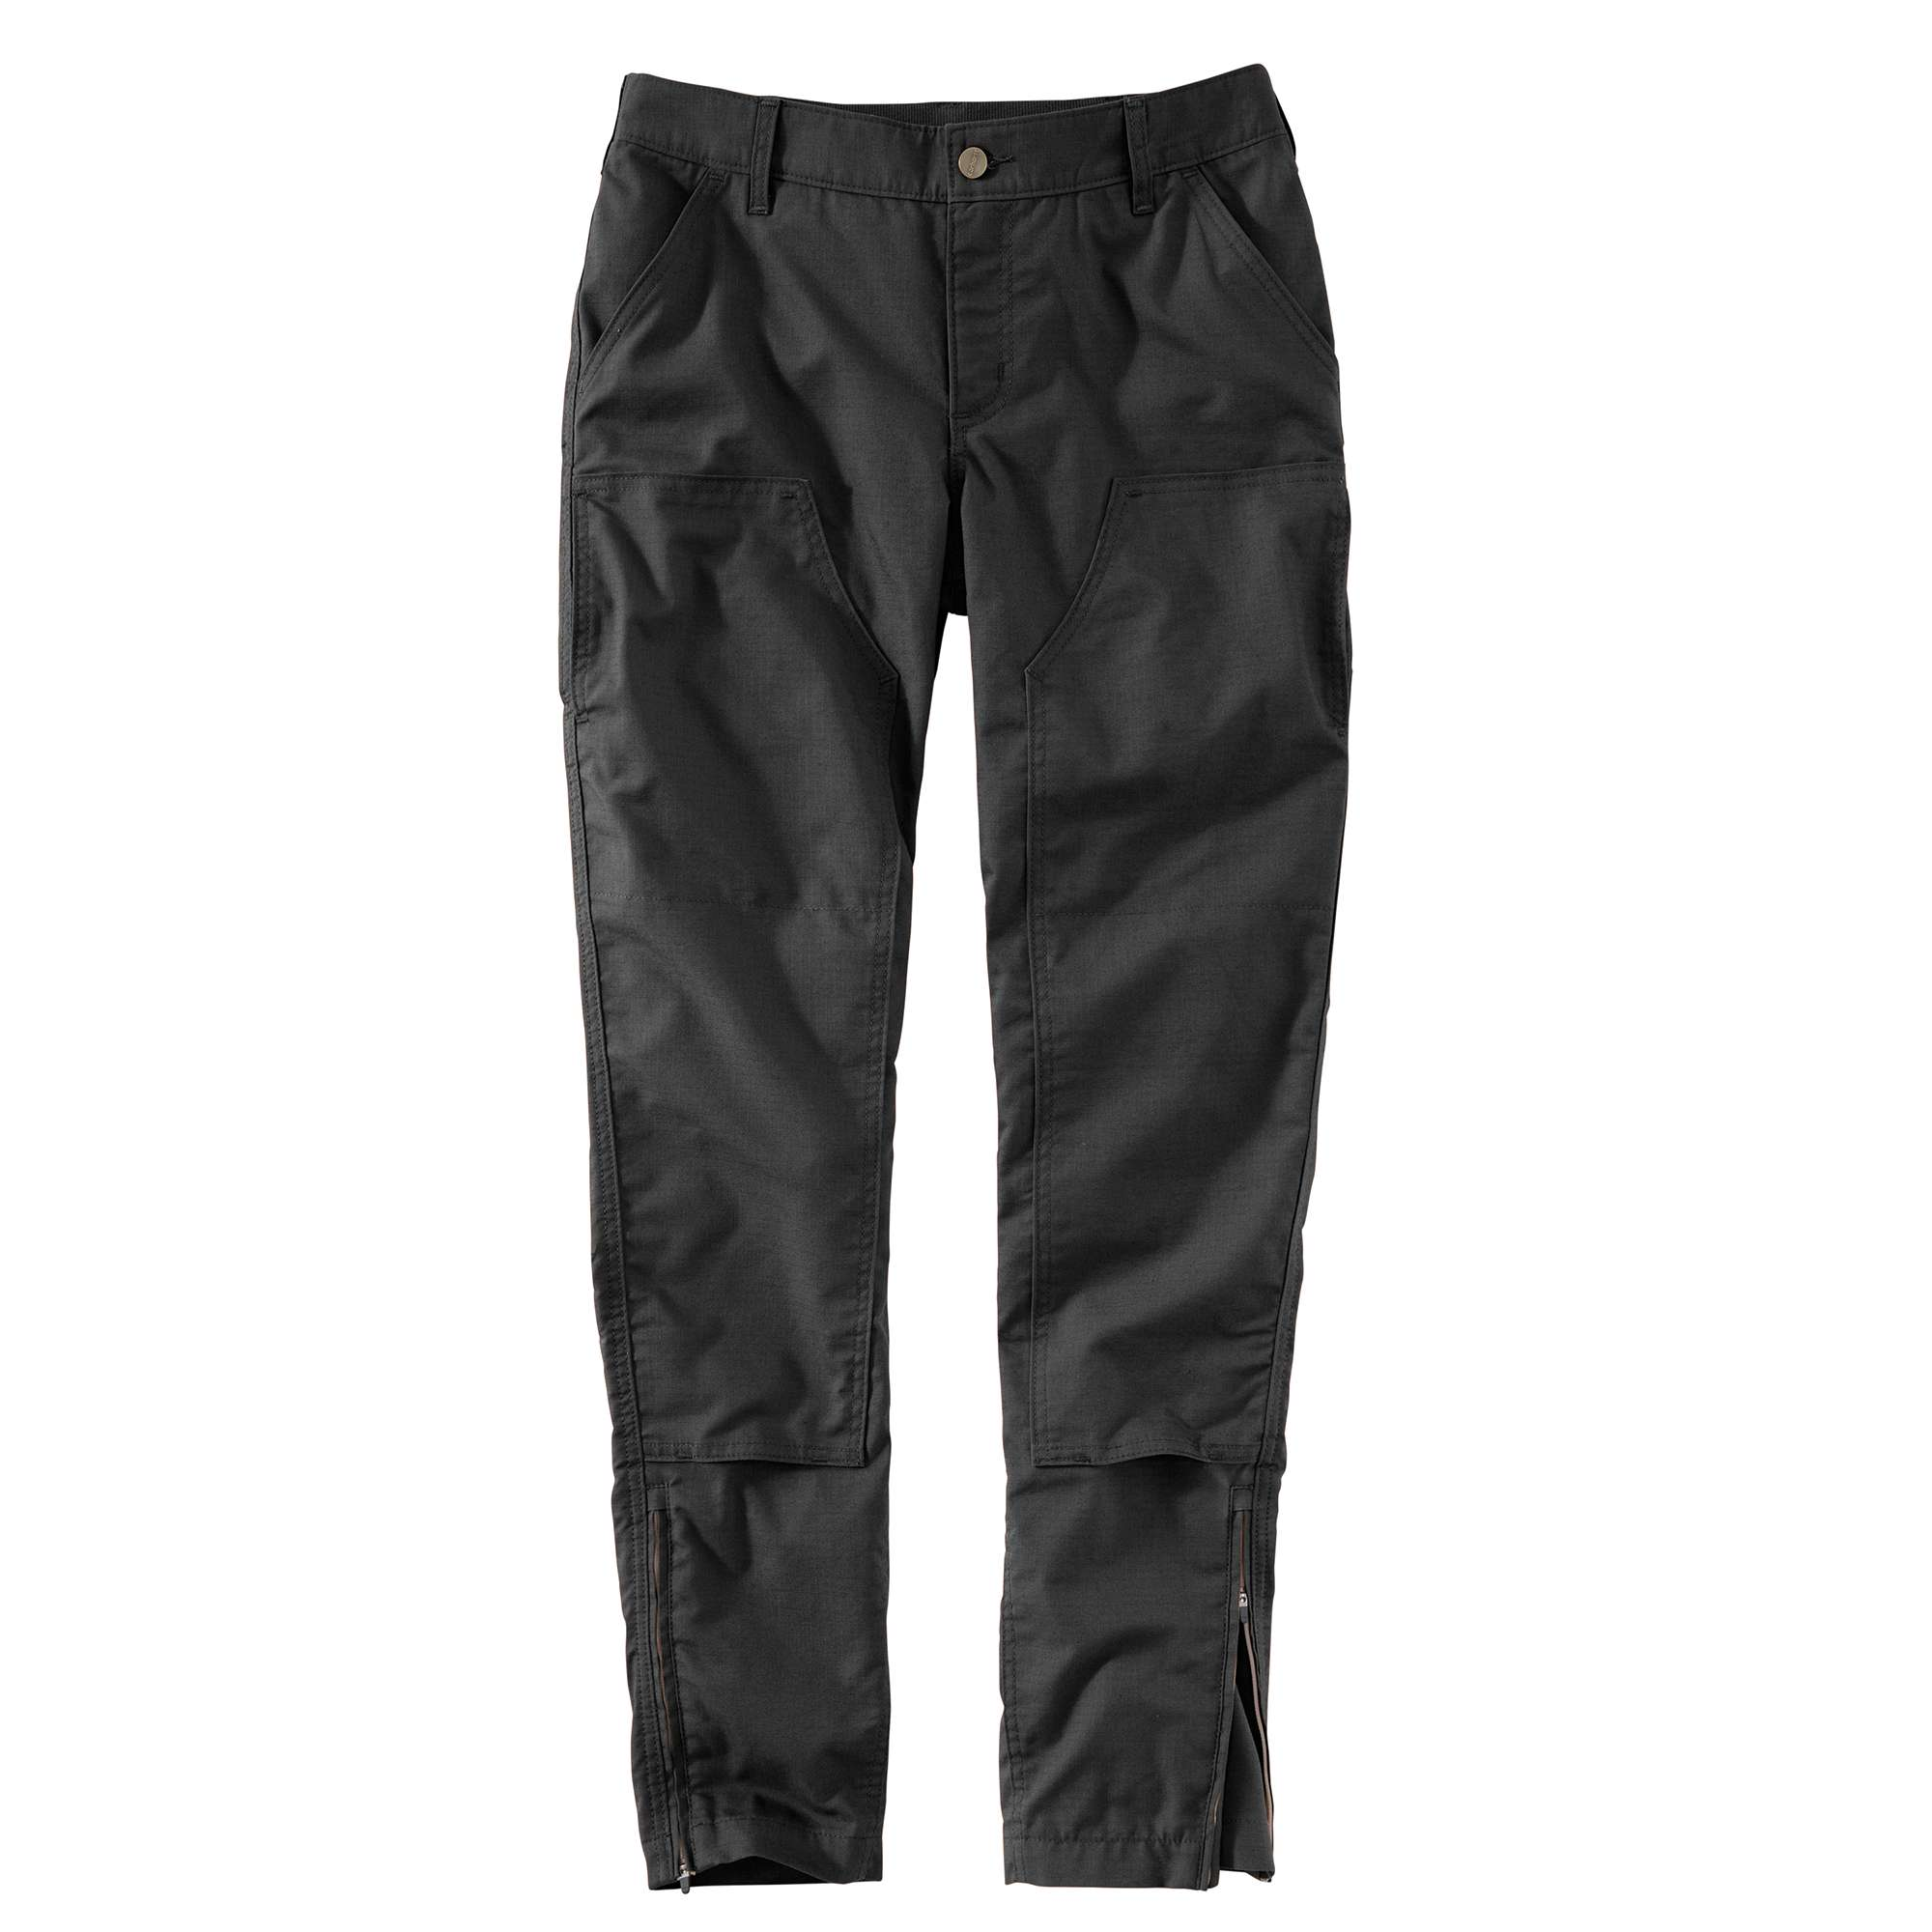 WOMEN'S ORIGINAL-FIT SMITHVILLE PANT